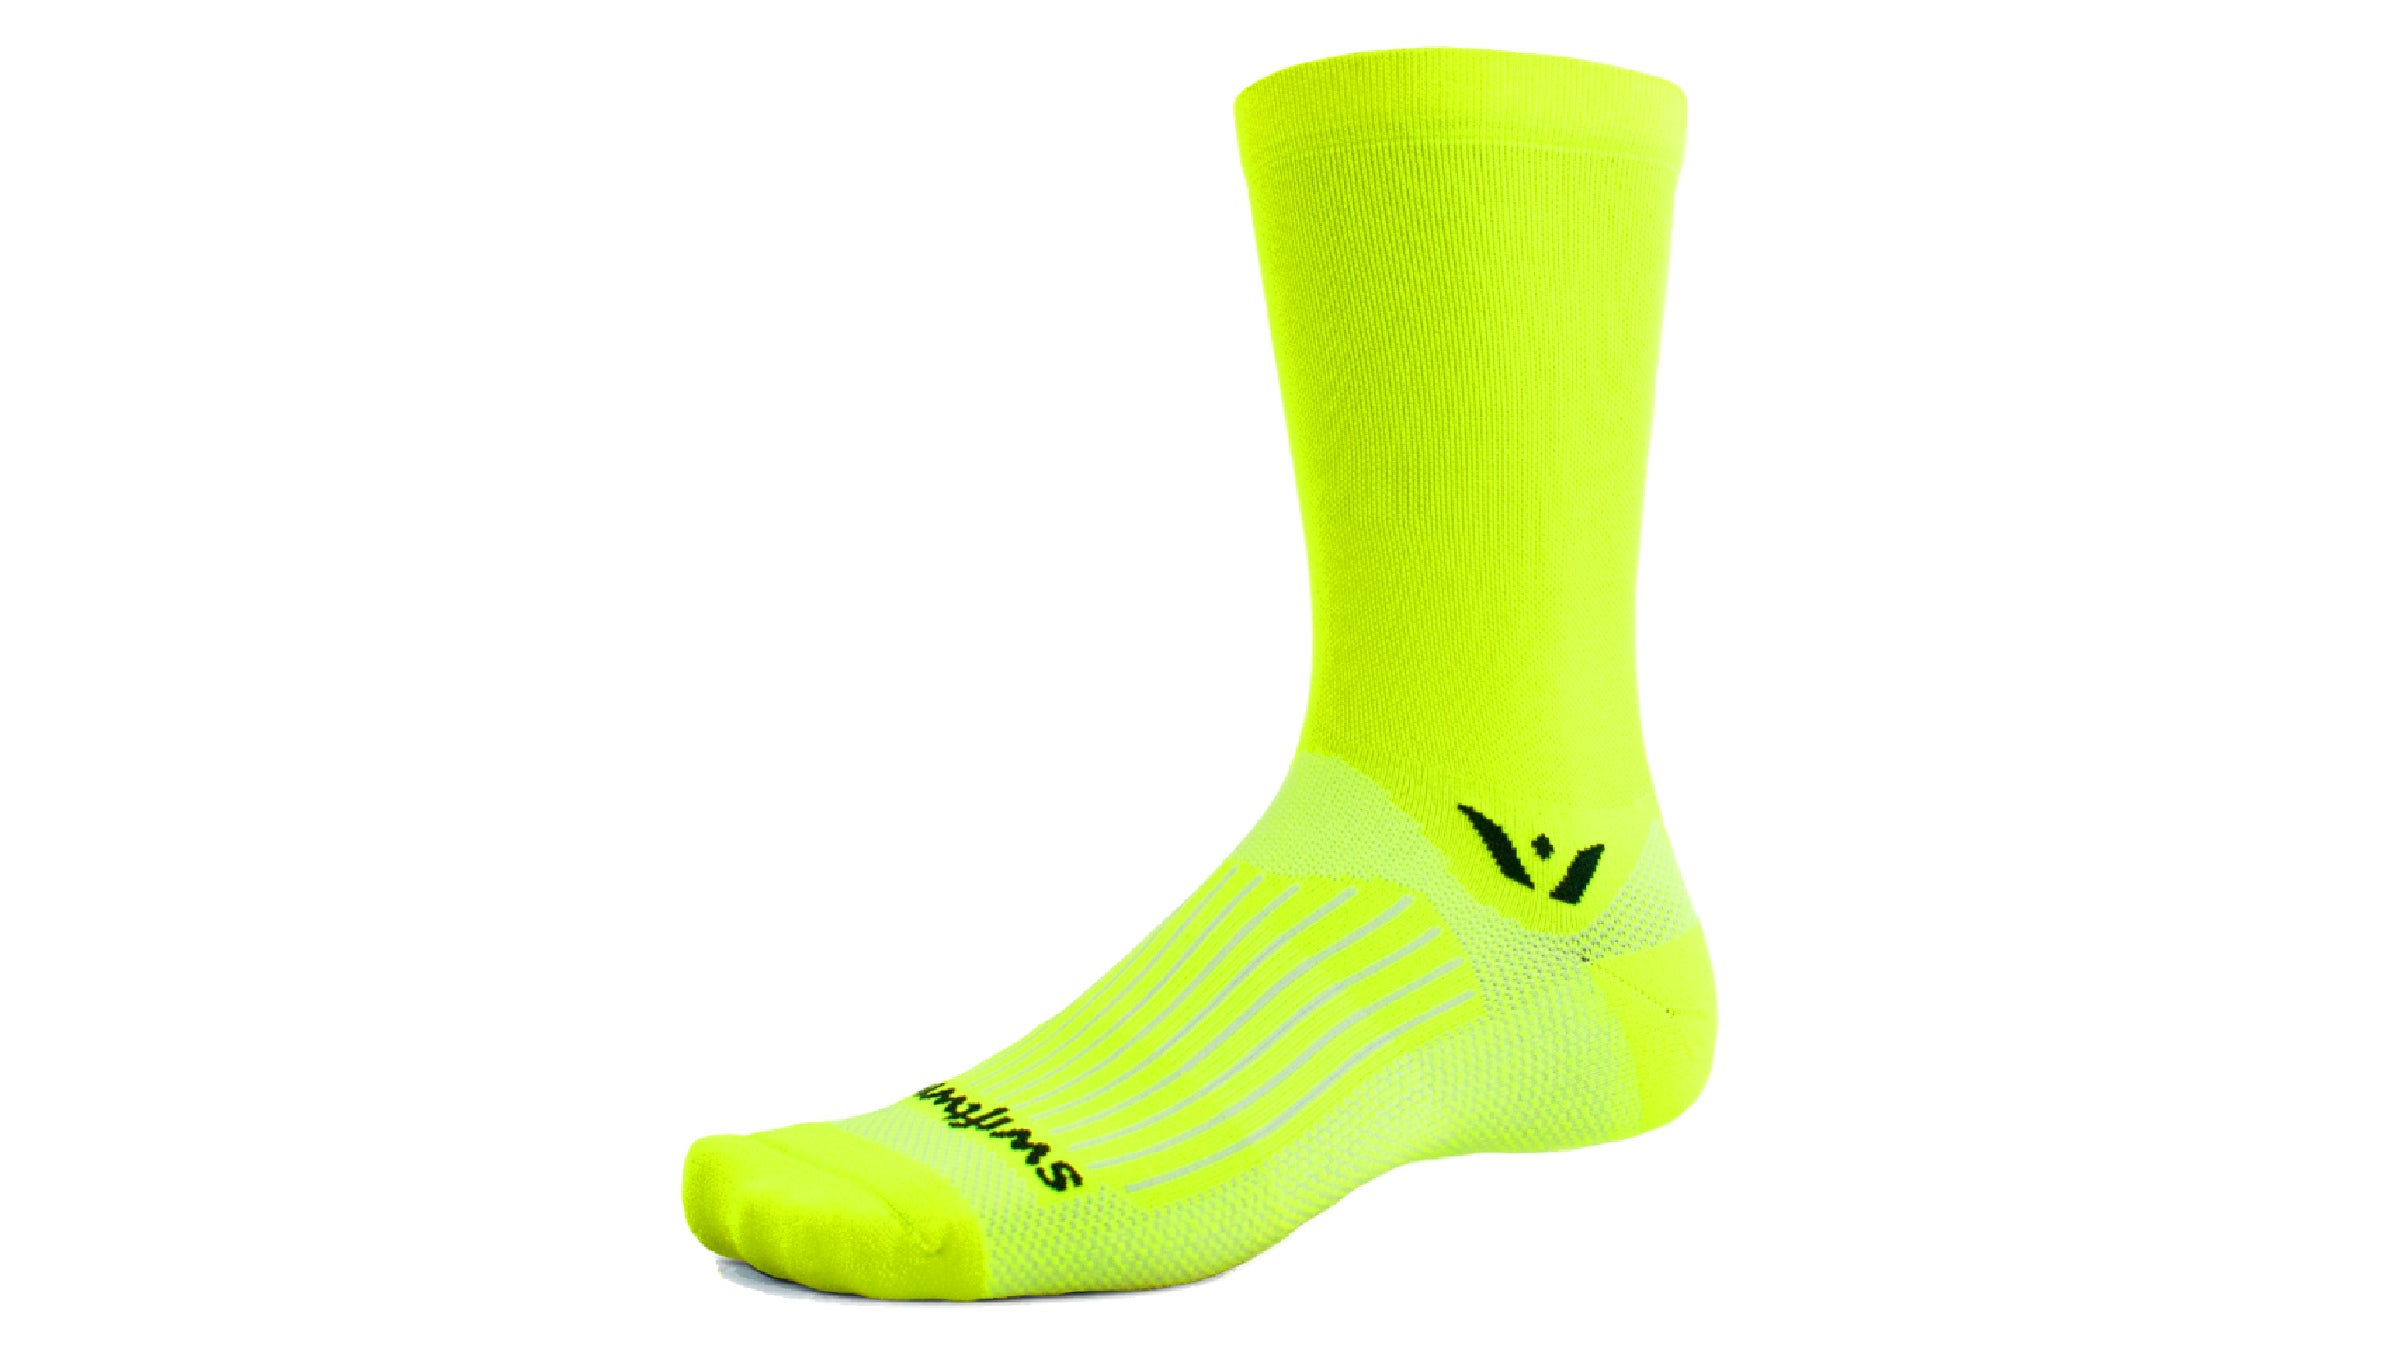 Neon yellow sock